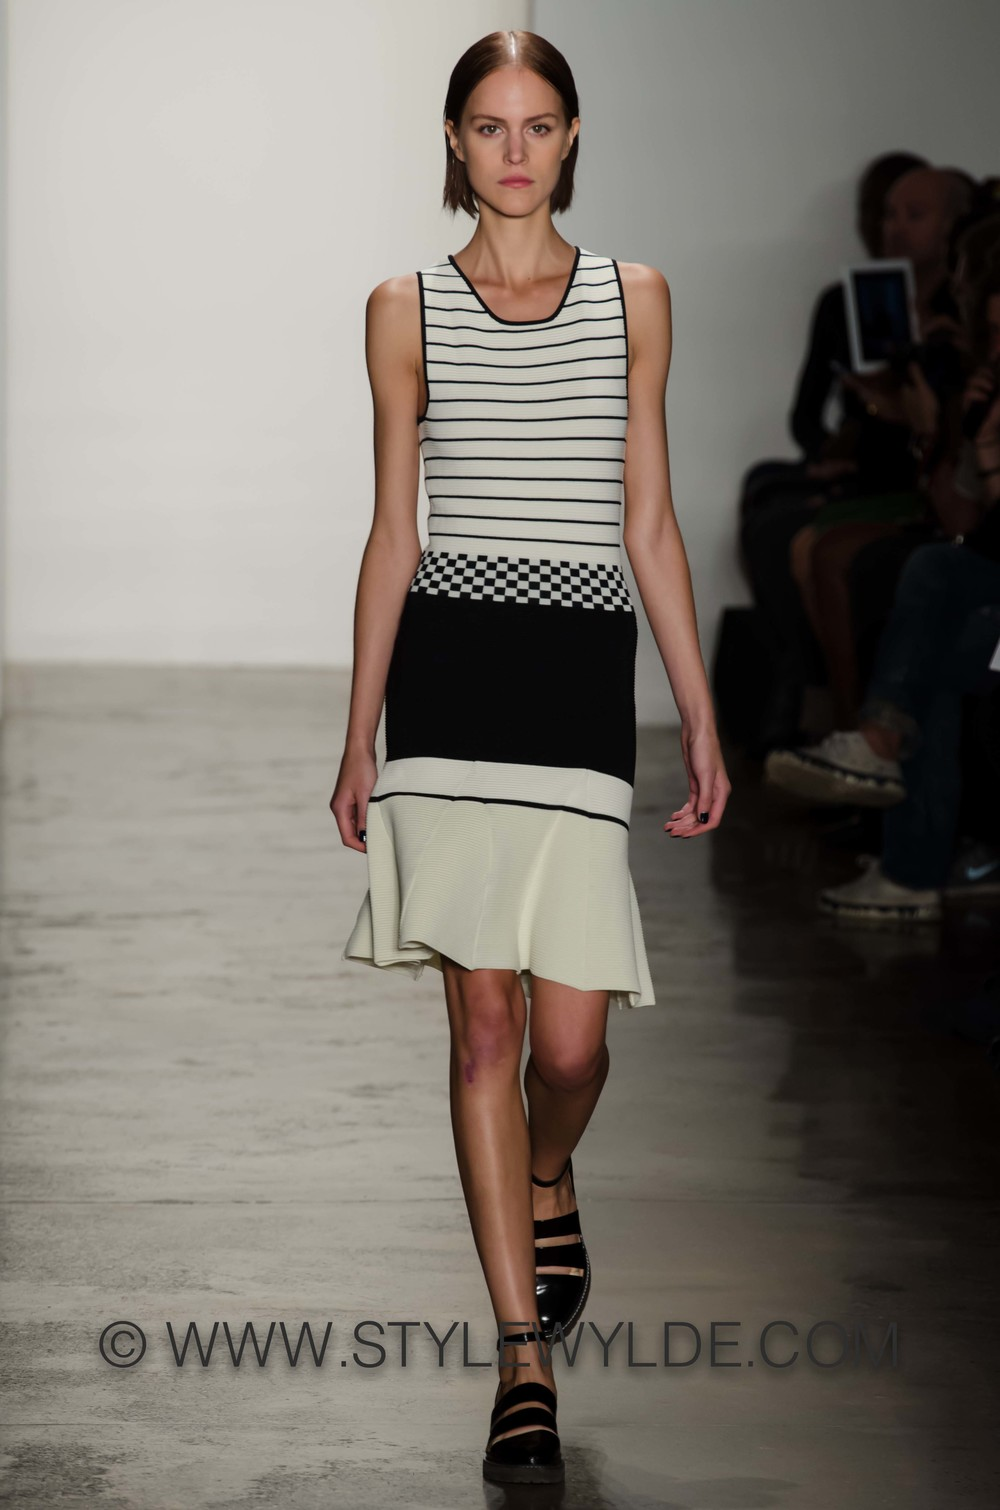 stylewylde_timo_weiland_gallery_ss2014-4.jpg